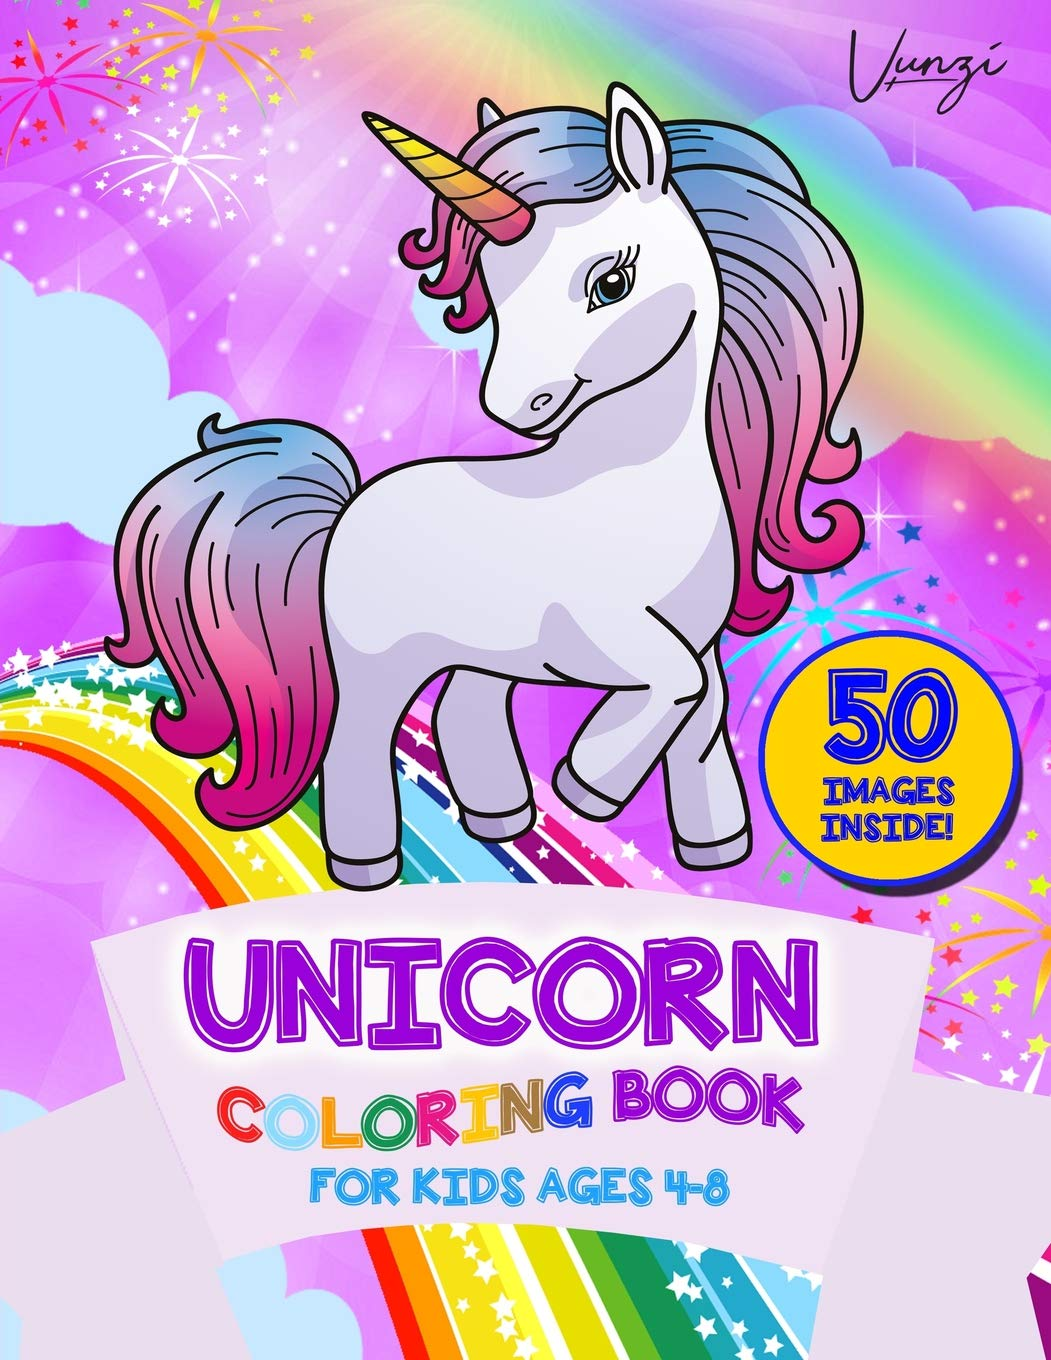 - Unicorn Coloring Book For Kids Ages 4-8: A Beautiful Collection Of